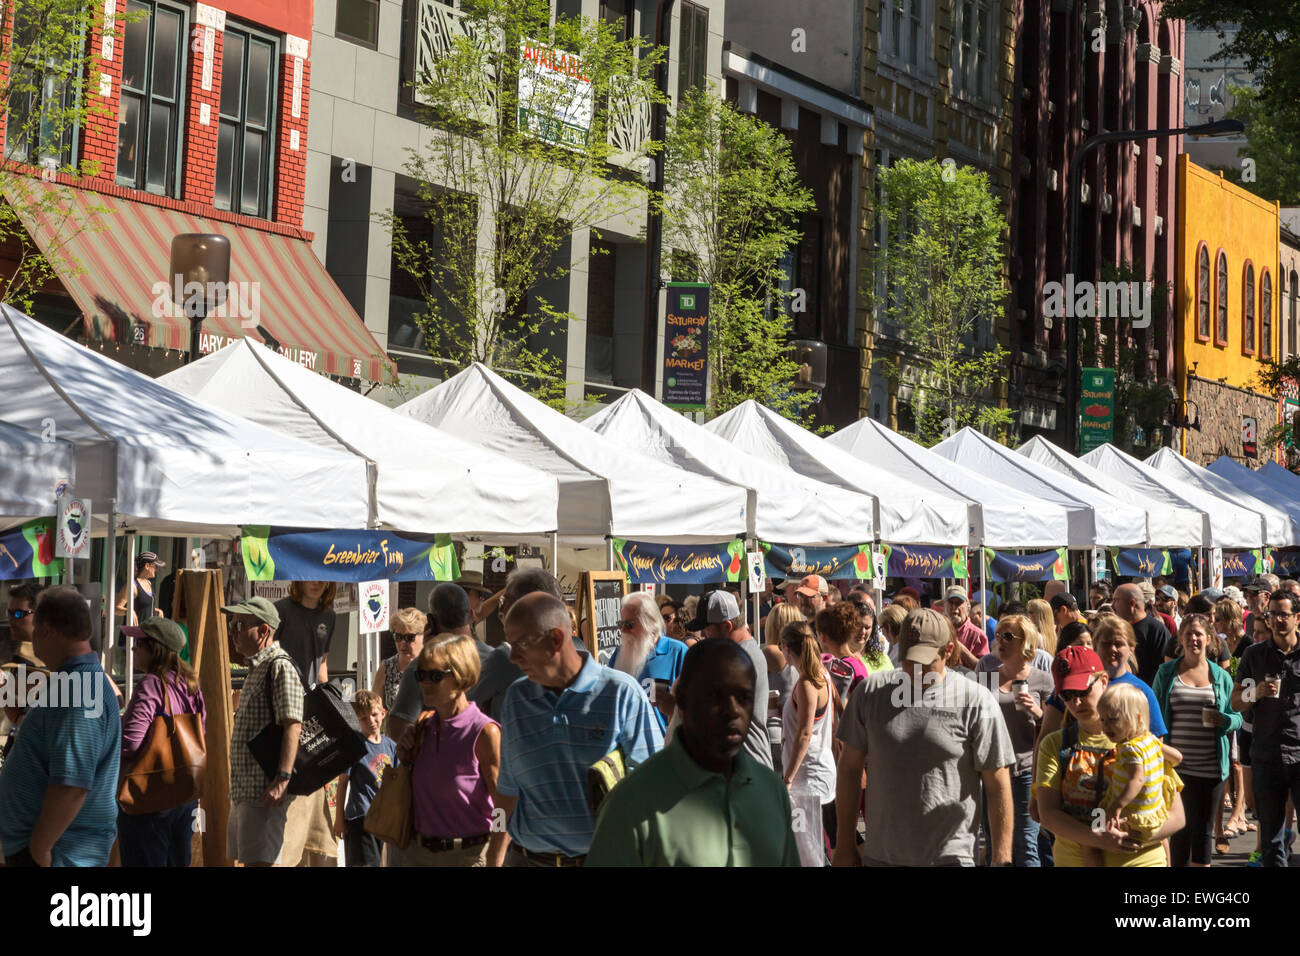 Shoppers crowd the streets of Greenville, SC in search of fresh local foods and local crafts at the TD Saturday - Stock Image